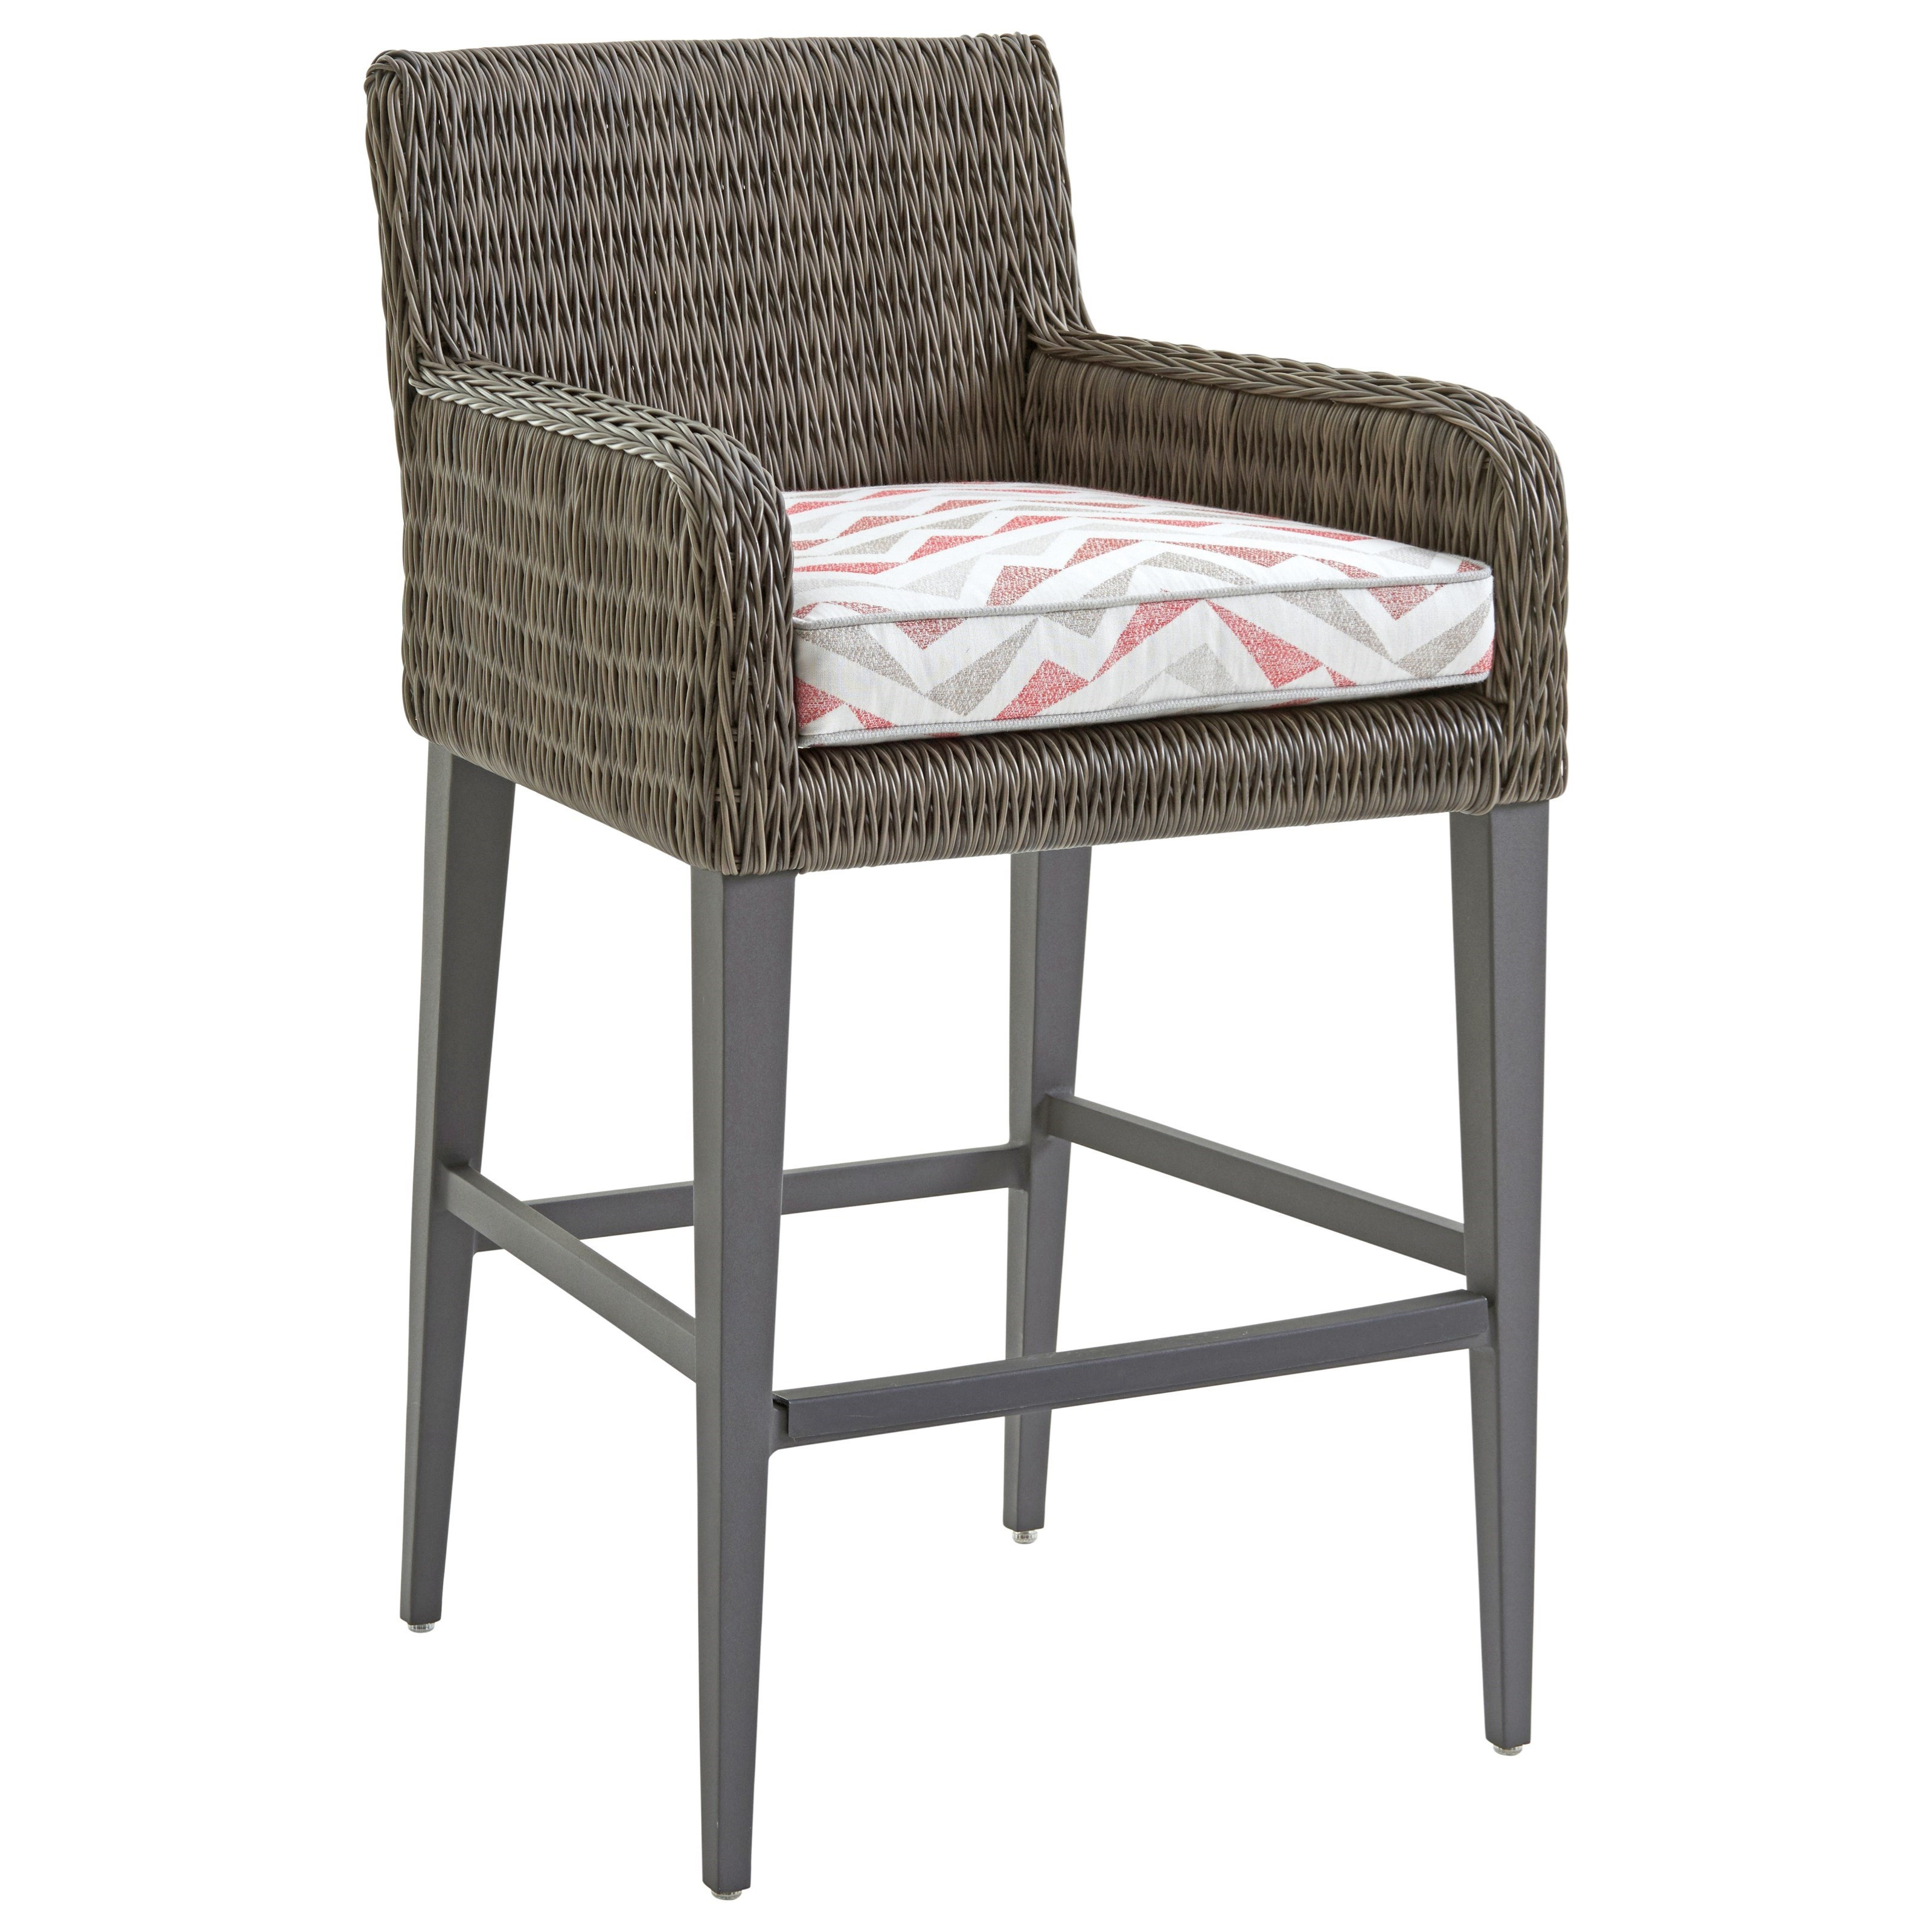 Cypress Point Ocean Terrace Outdoor Bar Stool by Tommy Bahama Outdoor Living at Baer's Furniture